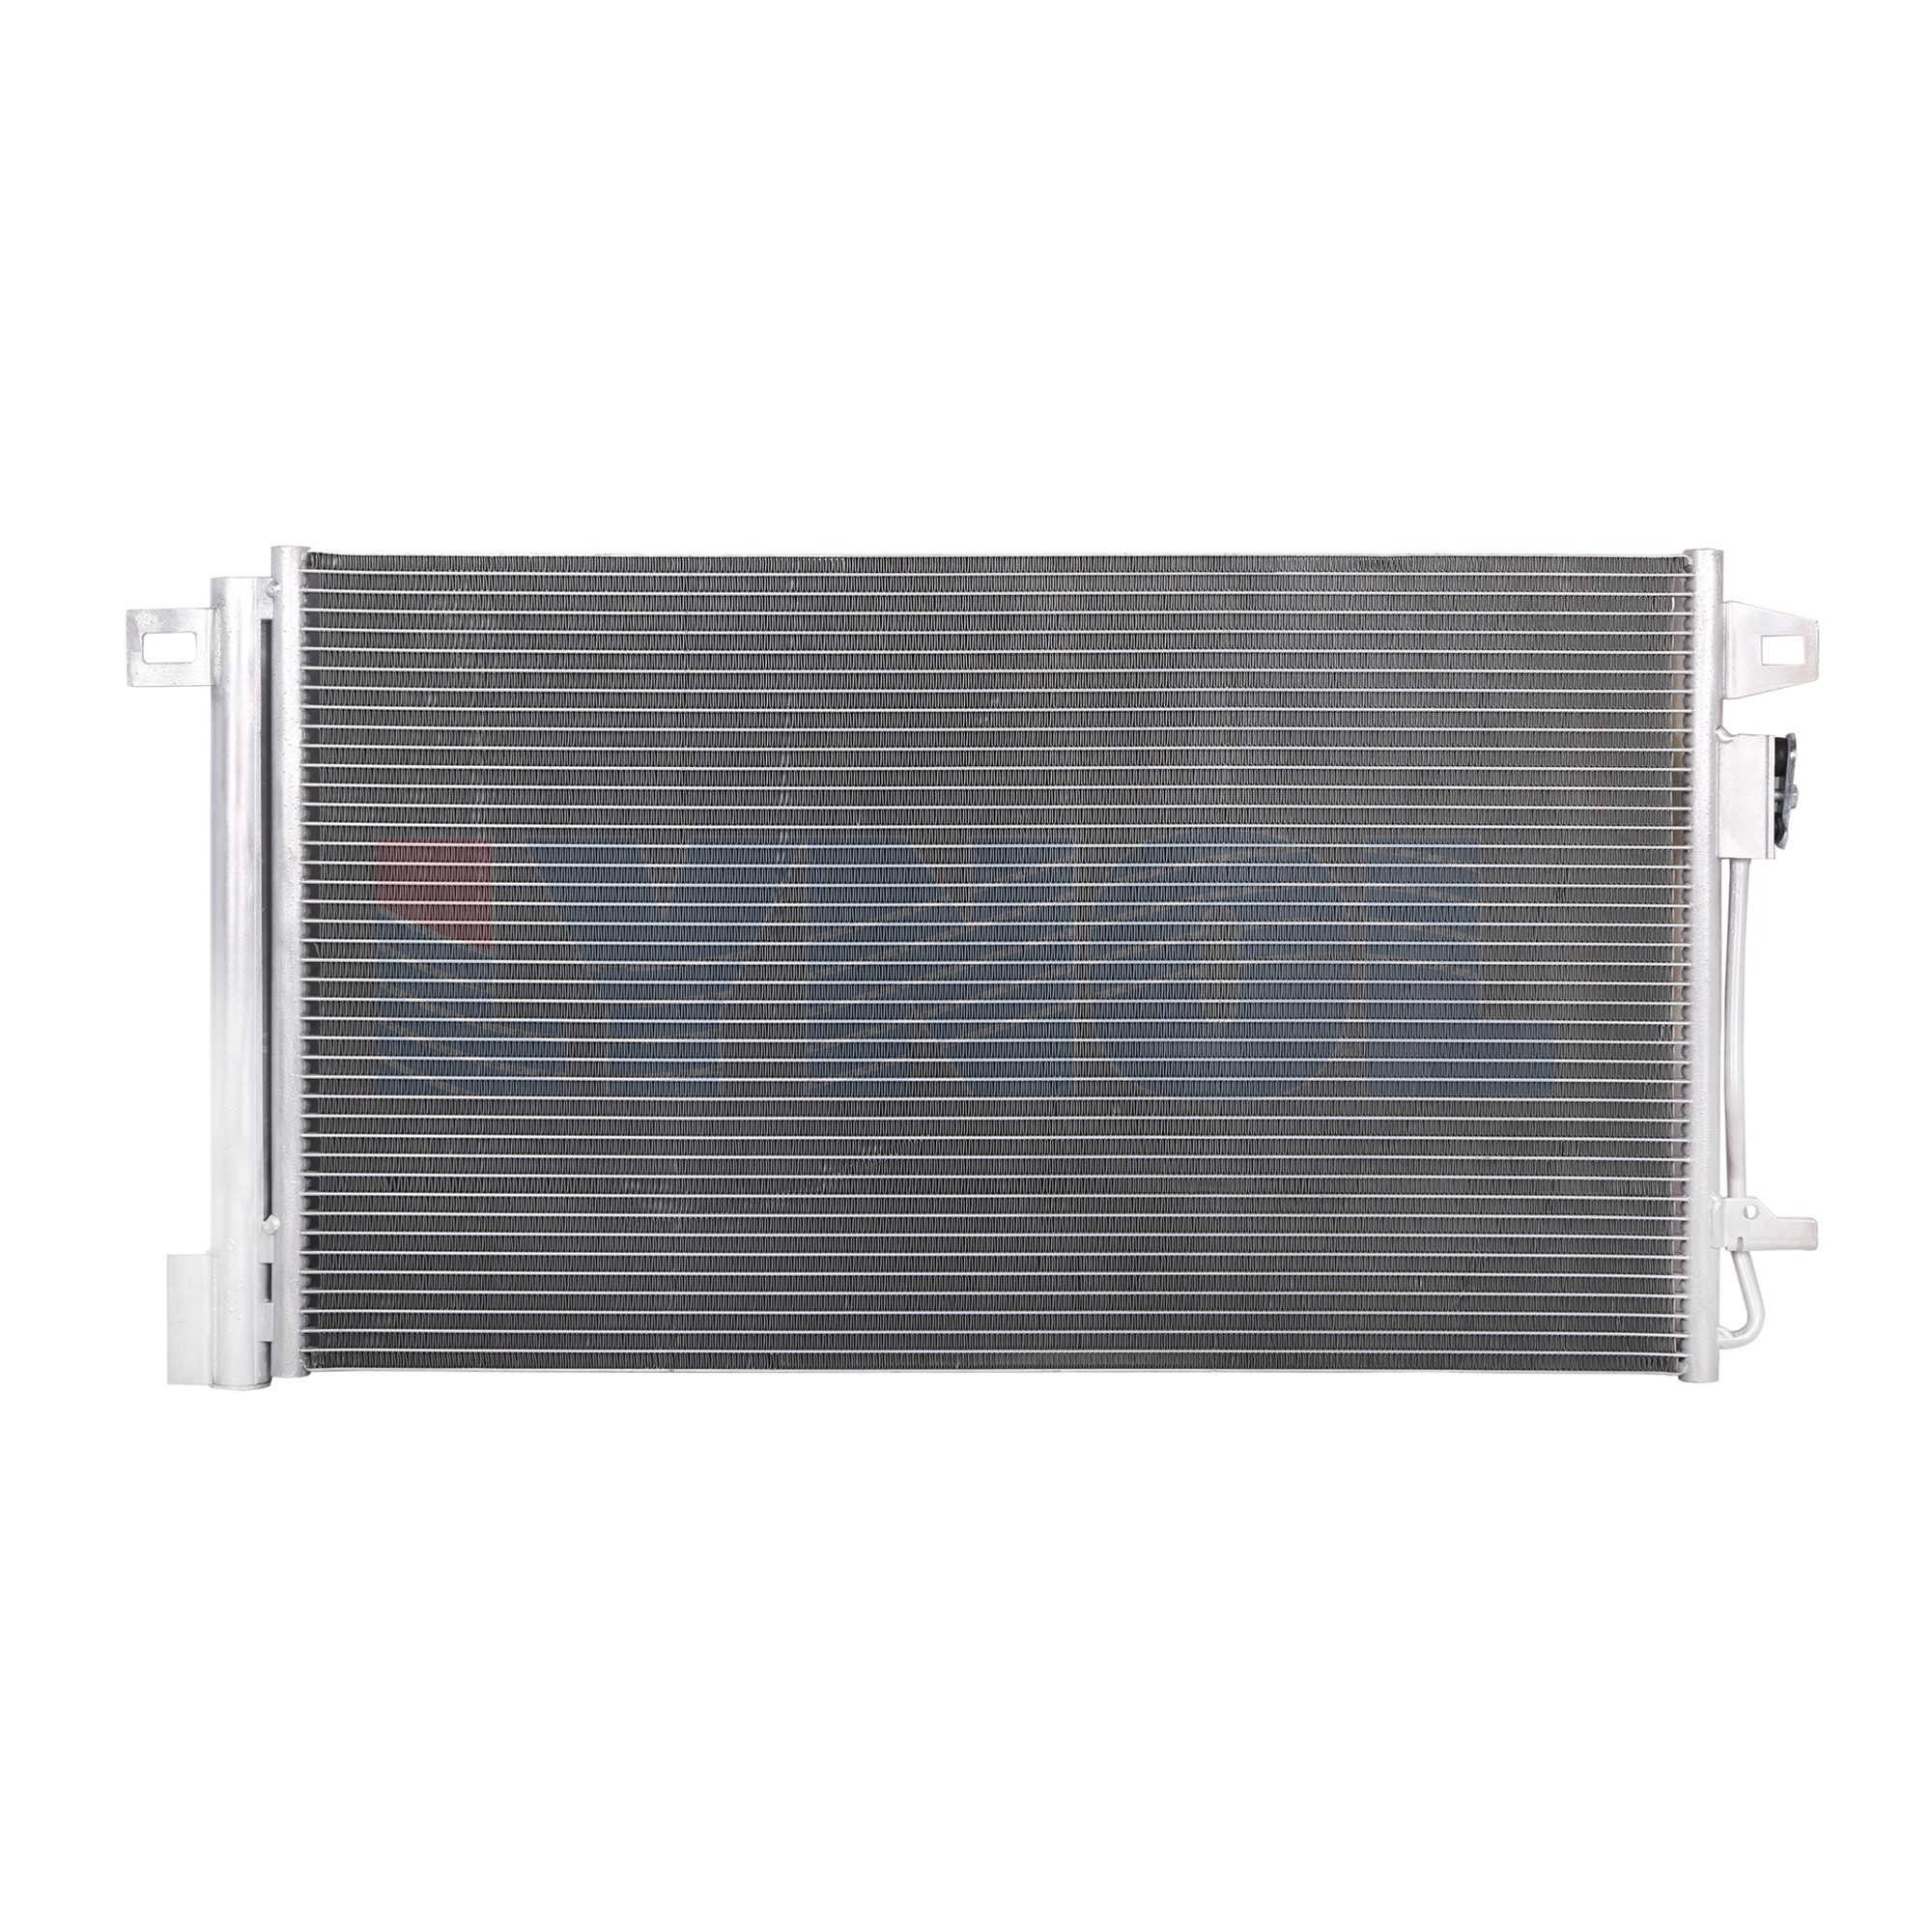 AC3649 - AC Condensers  - 07-16 Buick Enclave, Chevrolet Traverse, GMC Acadia, Saturn Outlook